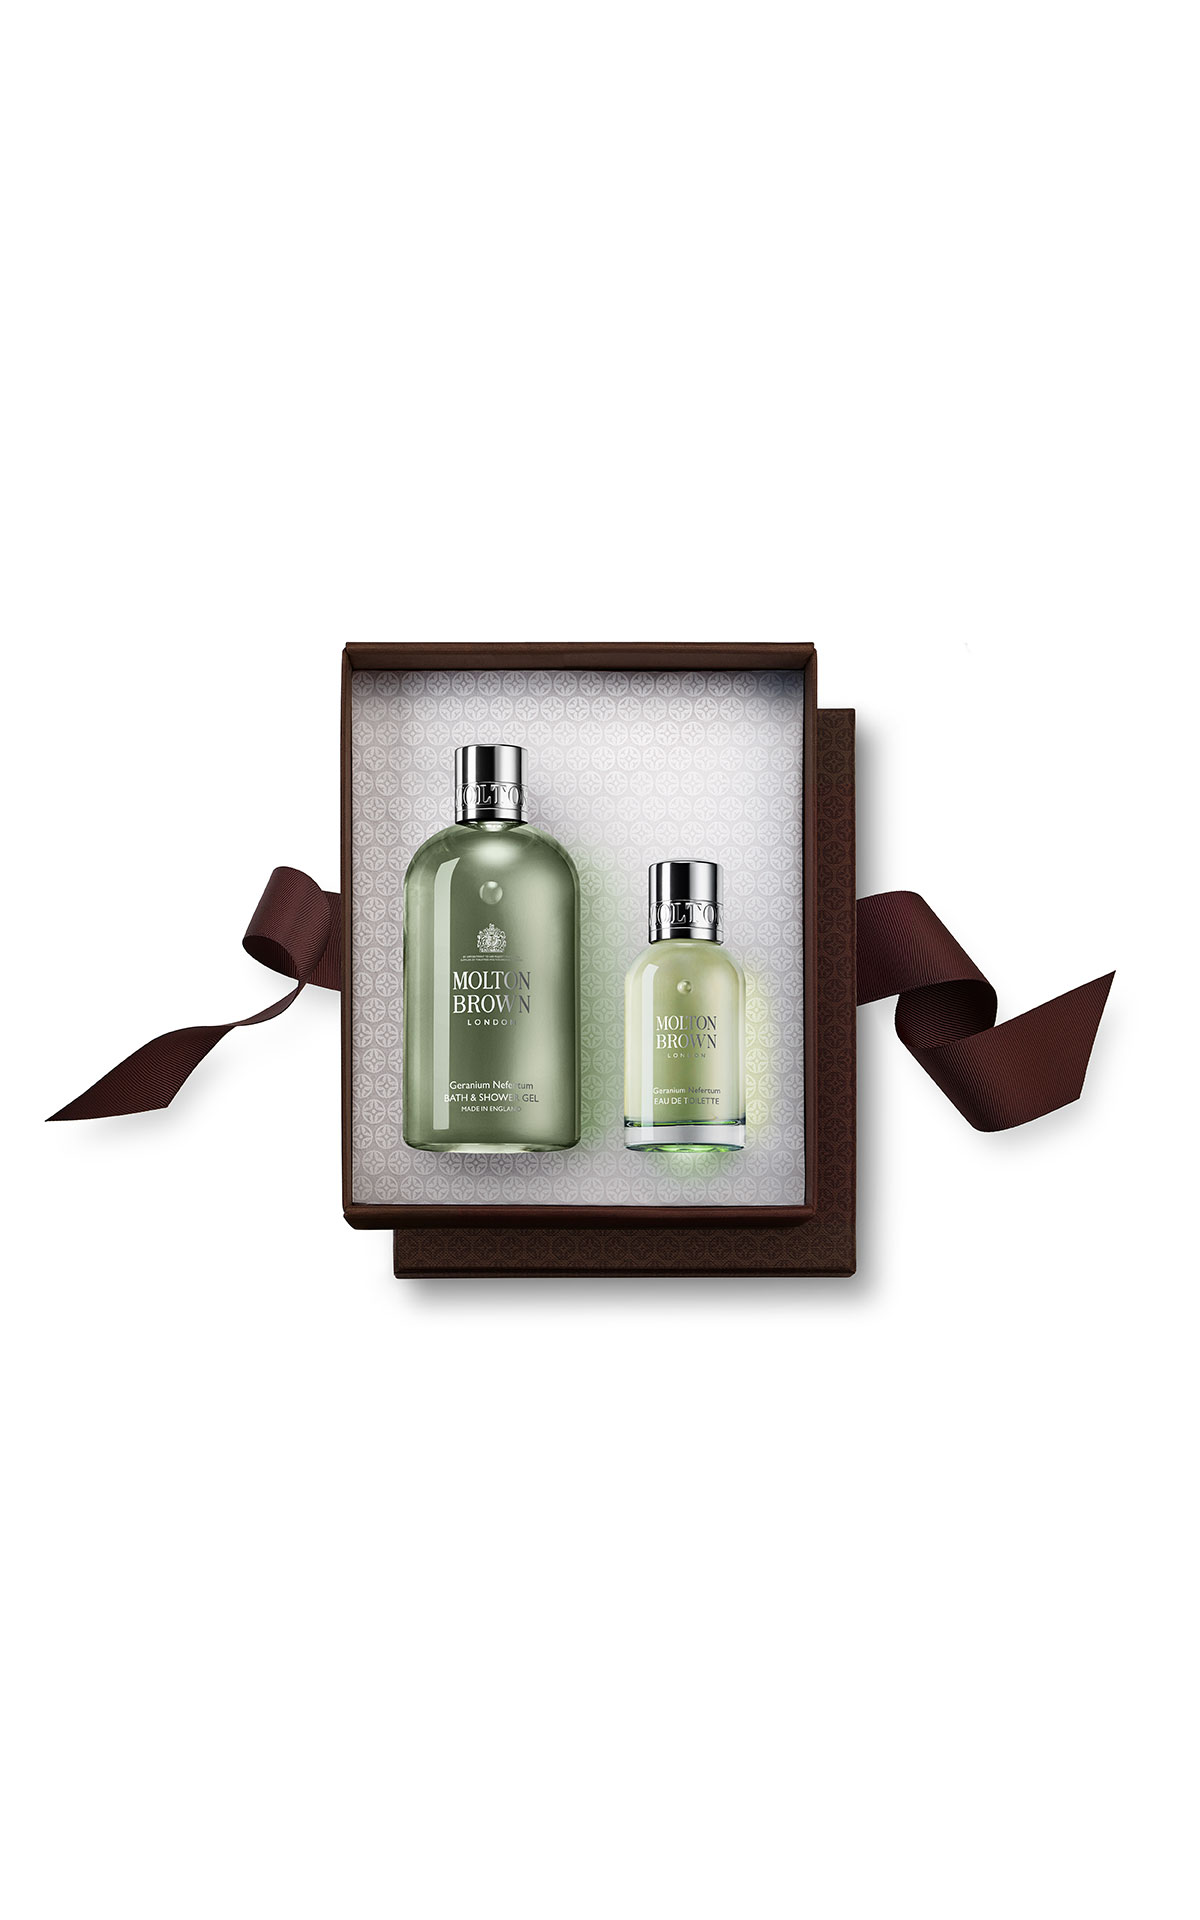 Molton Brown Geranium nefertum fragrance rituals gift set from Bicester Village